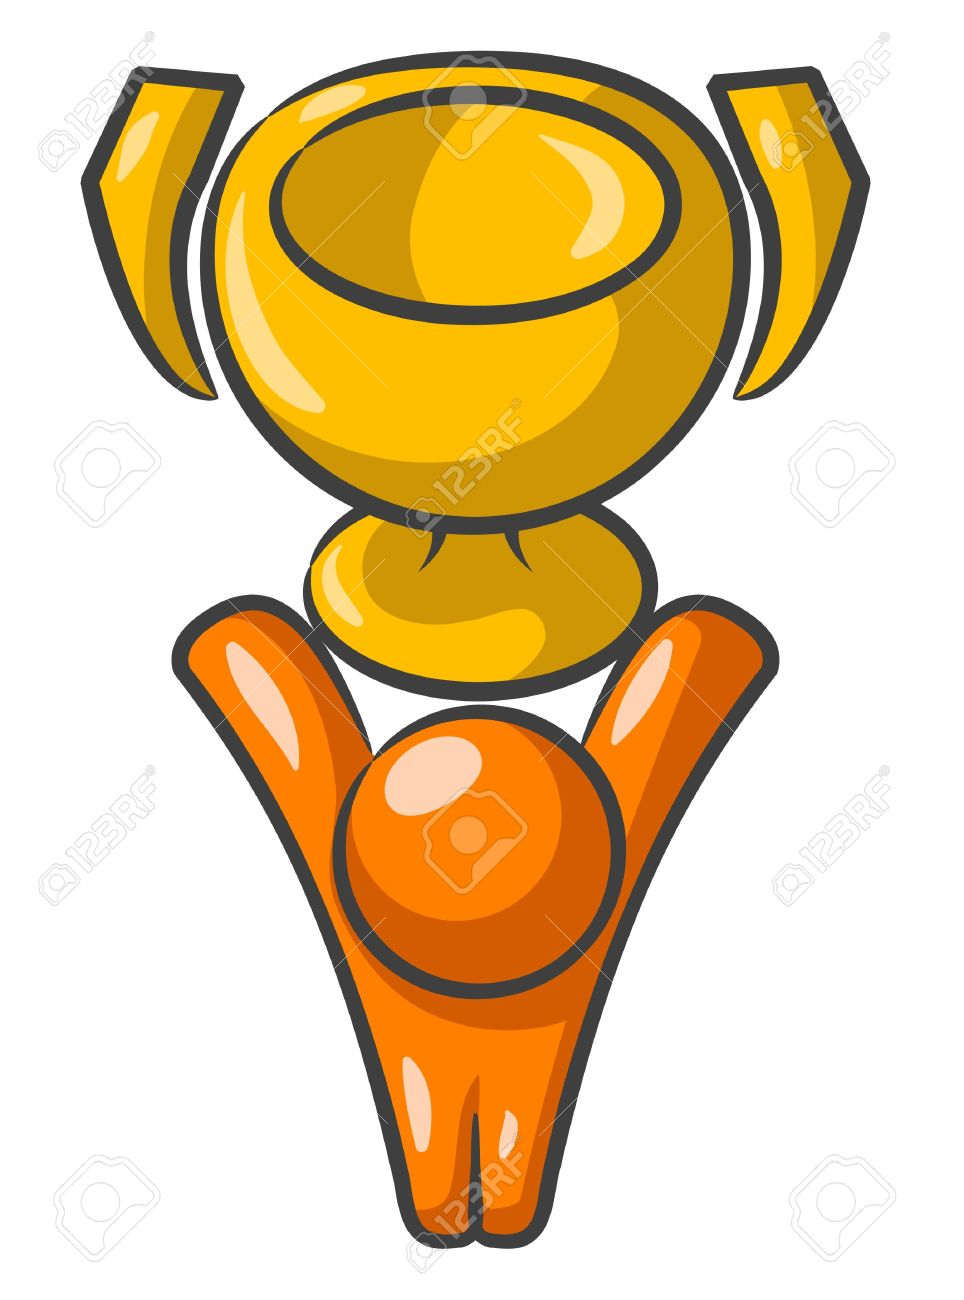 Collection of Accomplishment clipart.